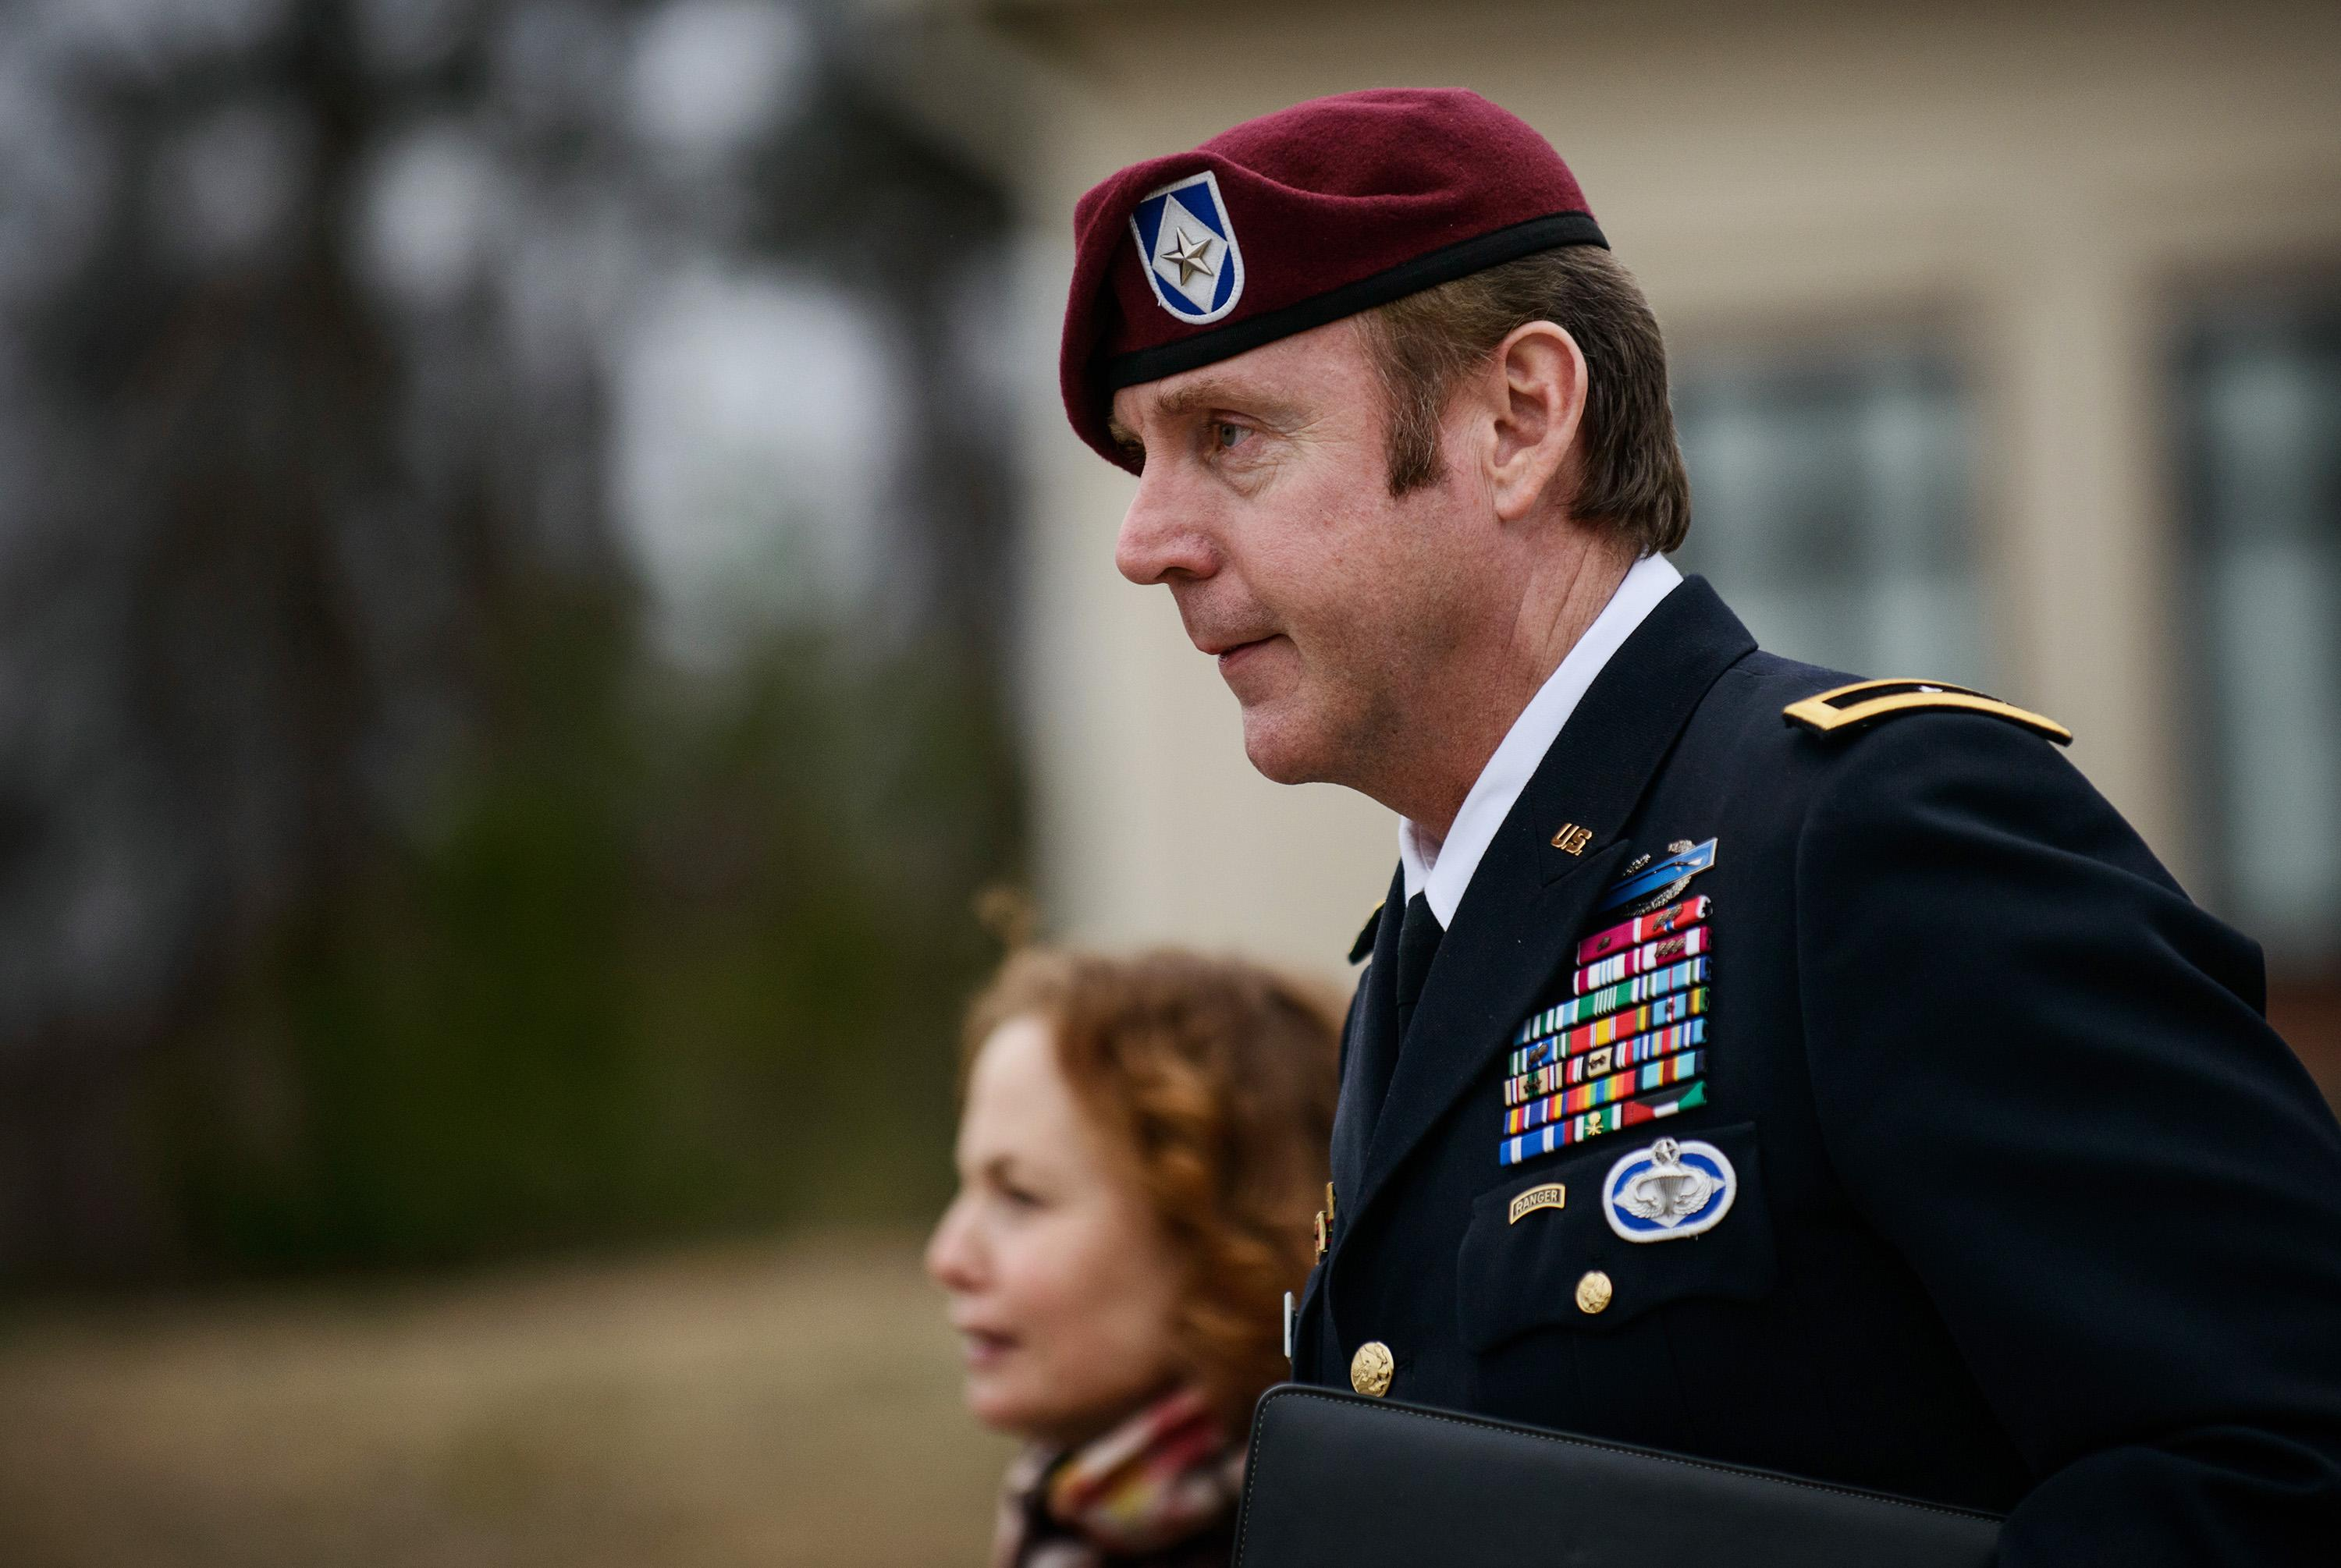 FILE - In this March 4, 2014 file photo, Brig. Gen. Jeffrey Sinclair leaves the courthouse following a day of motions at Fort Bragg, N.C. Less than a month before Sinclair's trial on sexual assault charges, the lead prosecutor broke down in tears Tuesday as he told a superior he believed the primary accuser in the case had lied under oath. (AP Photo/The Fayetteville Observer, James Robinson) MANDATORY CREDIT